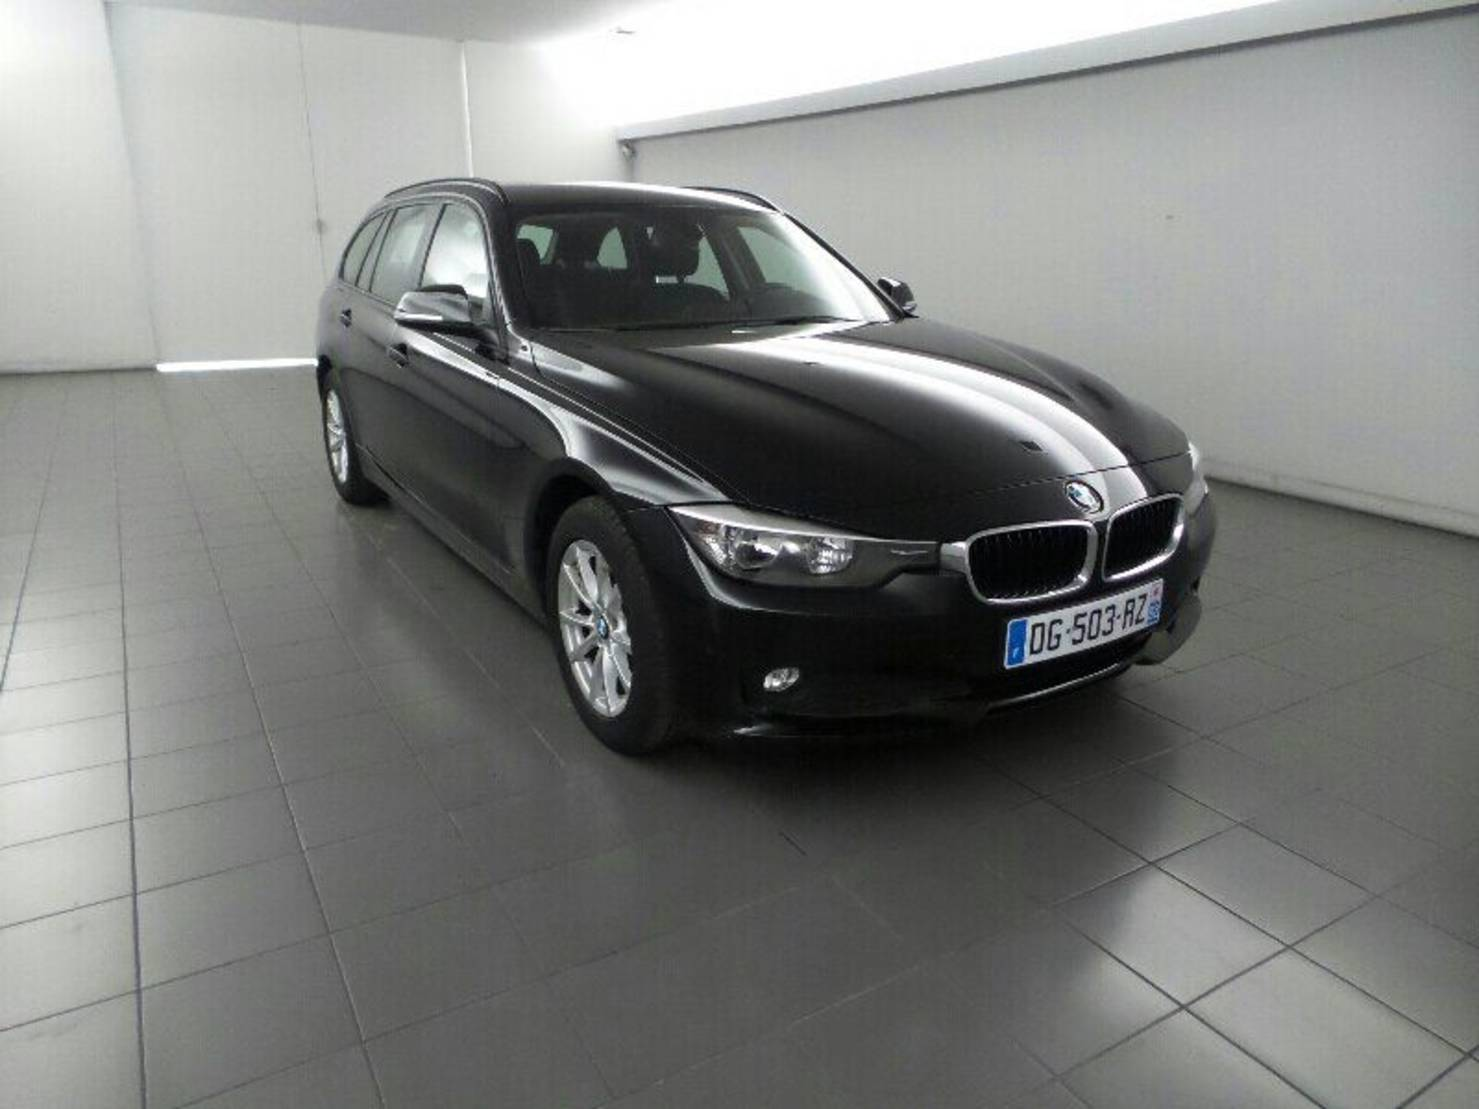 BMW 3 Serie Touring 316d 116 ch 119 g, Business detail2